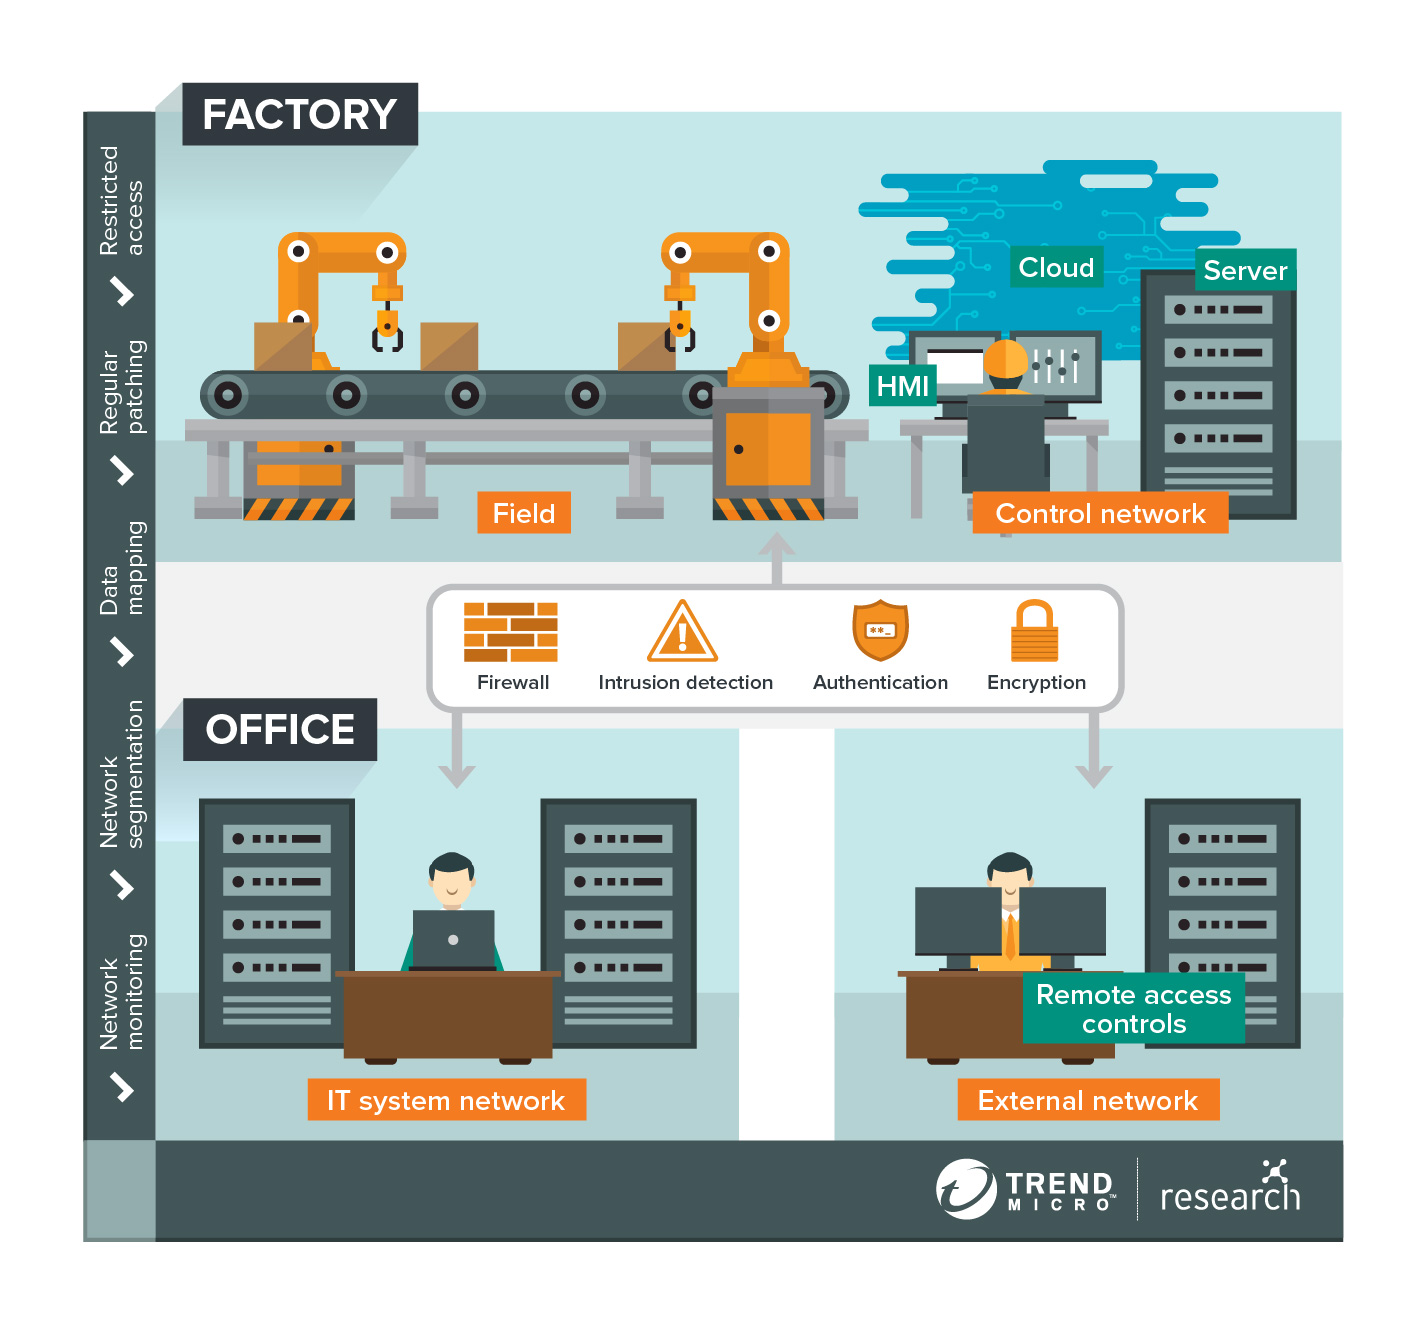 architecture of smart factory